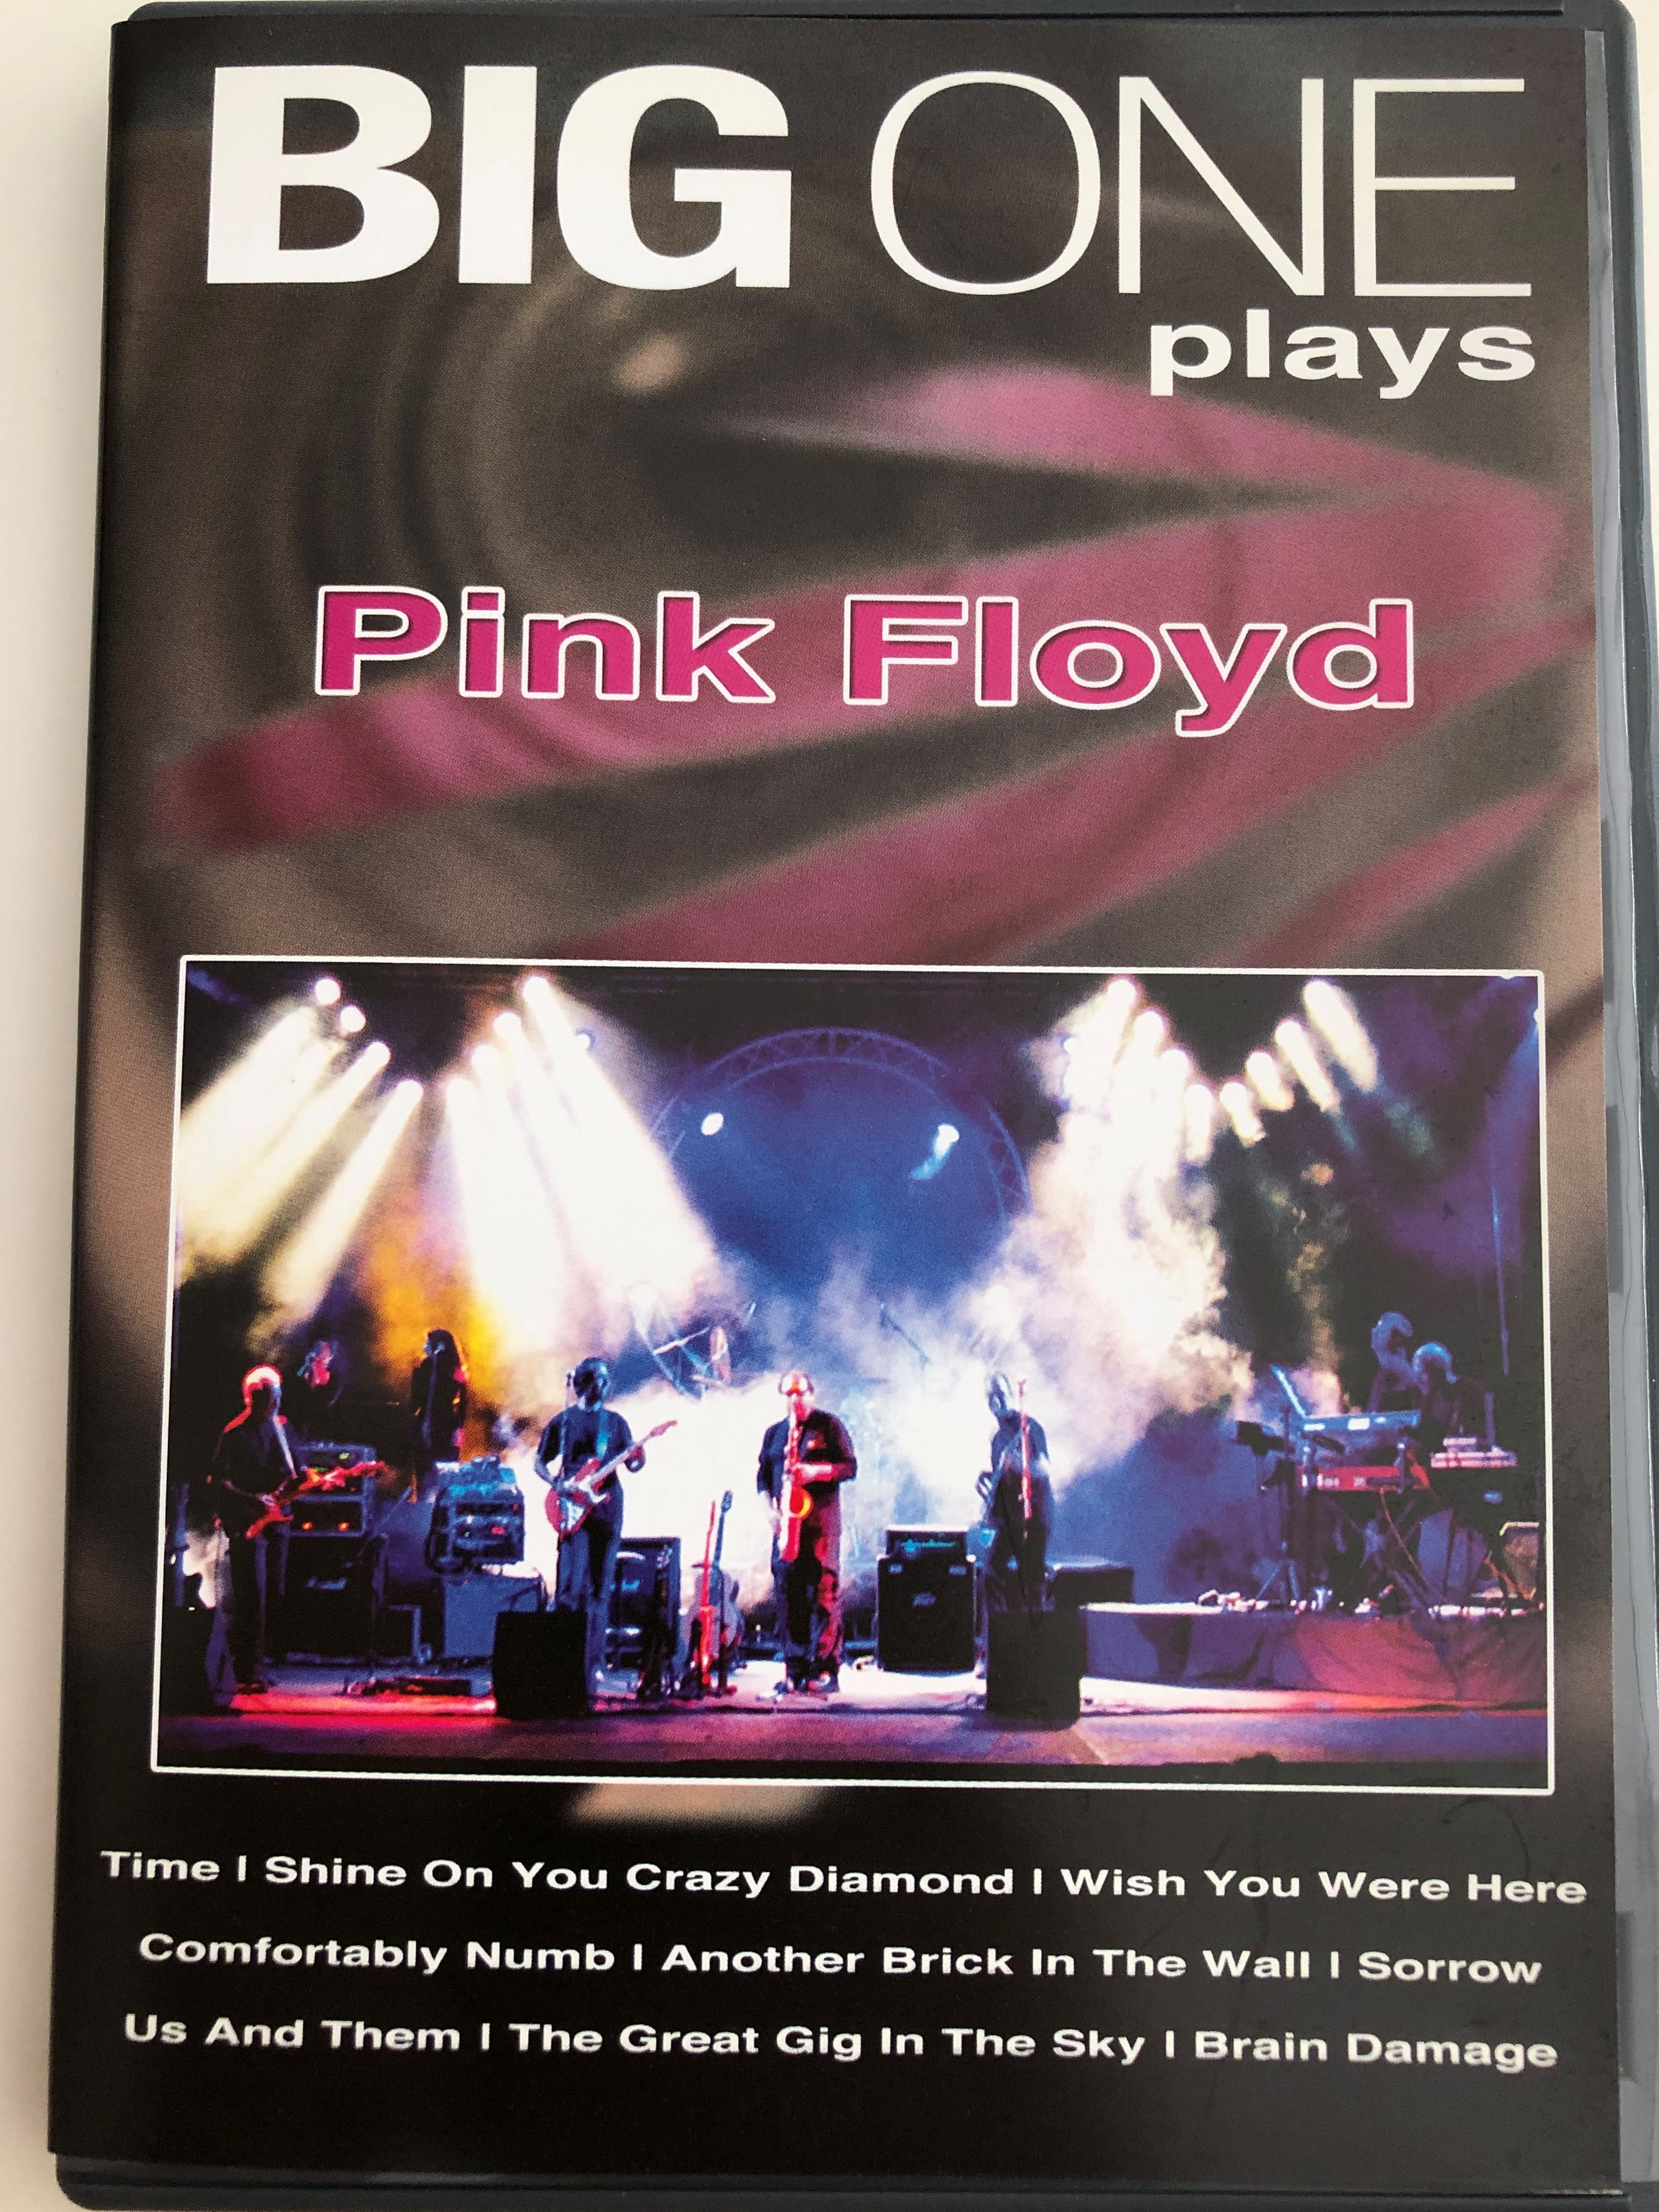 big-one-play-pink-floyd-dvd-live-on-tour-wish-you-were-here-comfortably-numb-another-brick-in-the-wall-1-.jpg